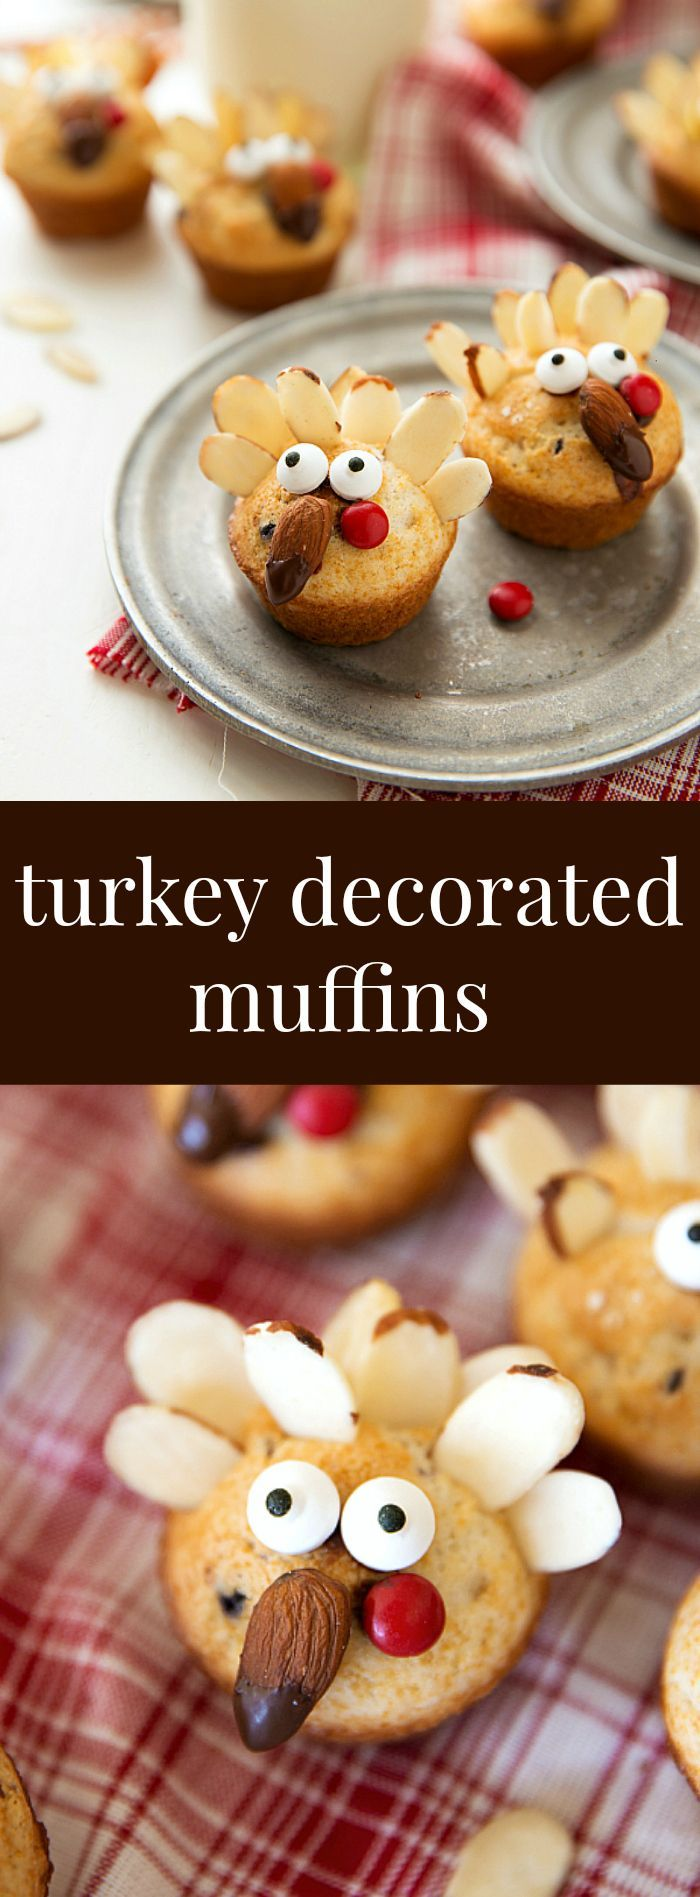 These cute miniature turkey muffins are an easy to make festive treat for Thanksgiving. Plus RECIPE VIDEO